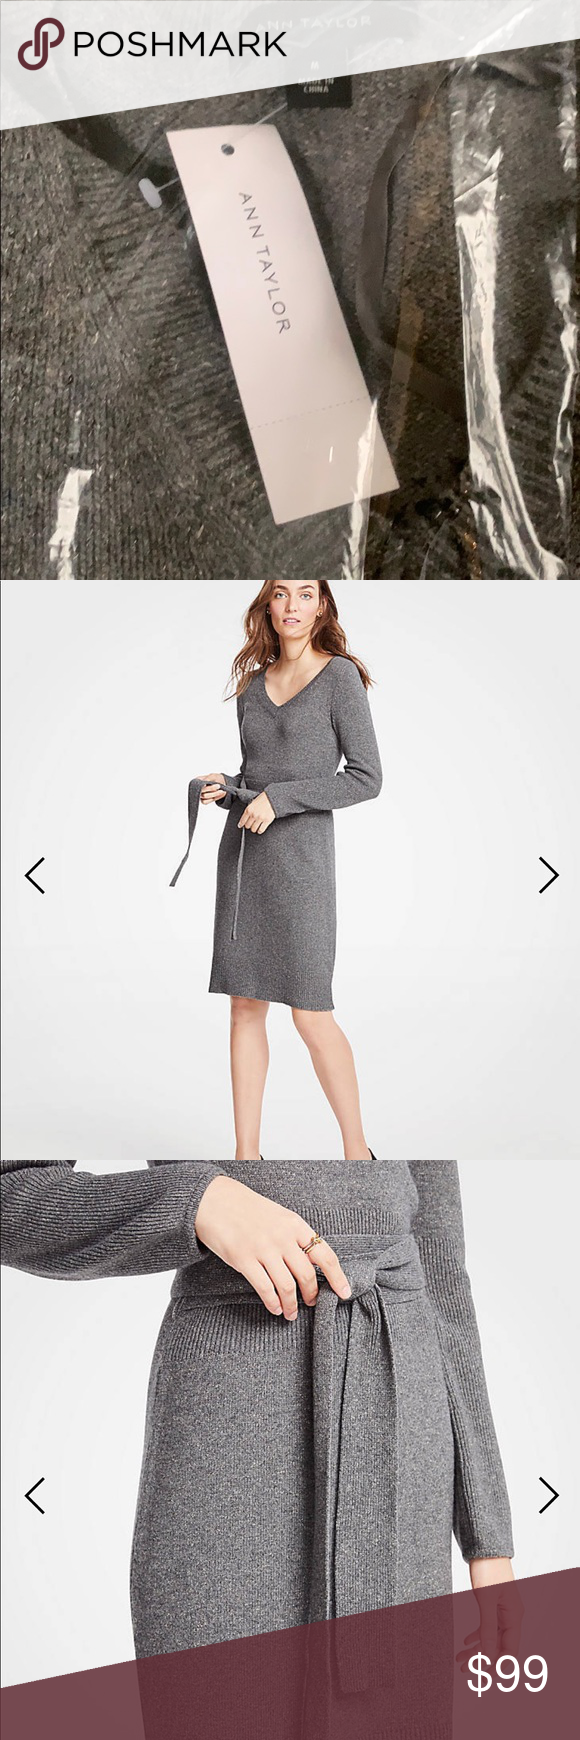 aa9886c74fe Ann Taylor tie waist v-neck sweater dress-M STYLE  484371 New w tags and in  bag Ann Taylor dress - beautiful gray Meet your real-life uniform  this is  ...